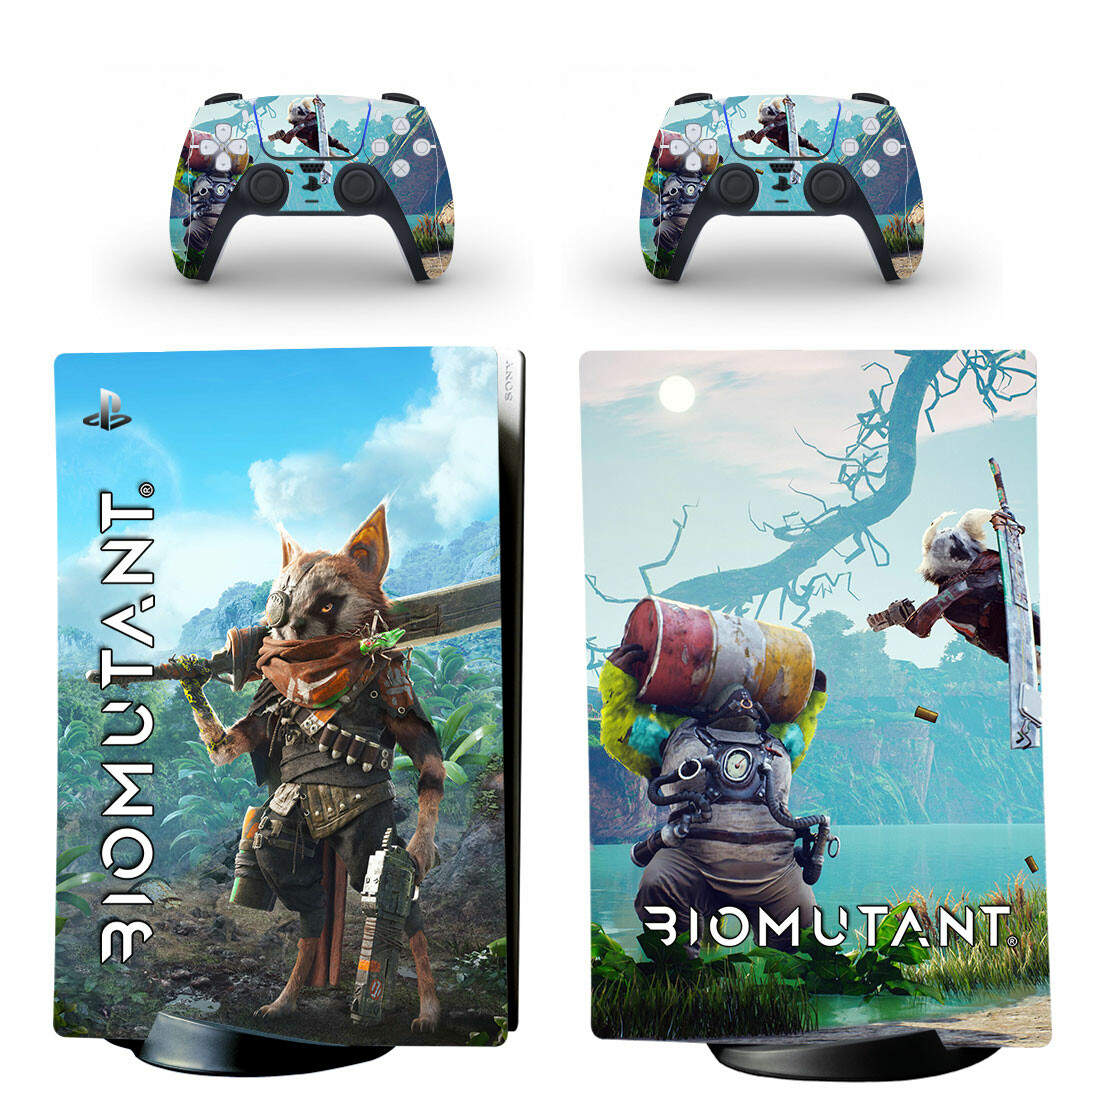 Biomutant Skin Sticker Decal For PS5 Digital Edition And Controllers